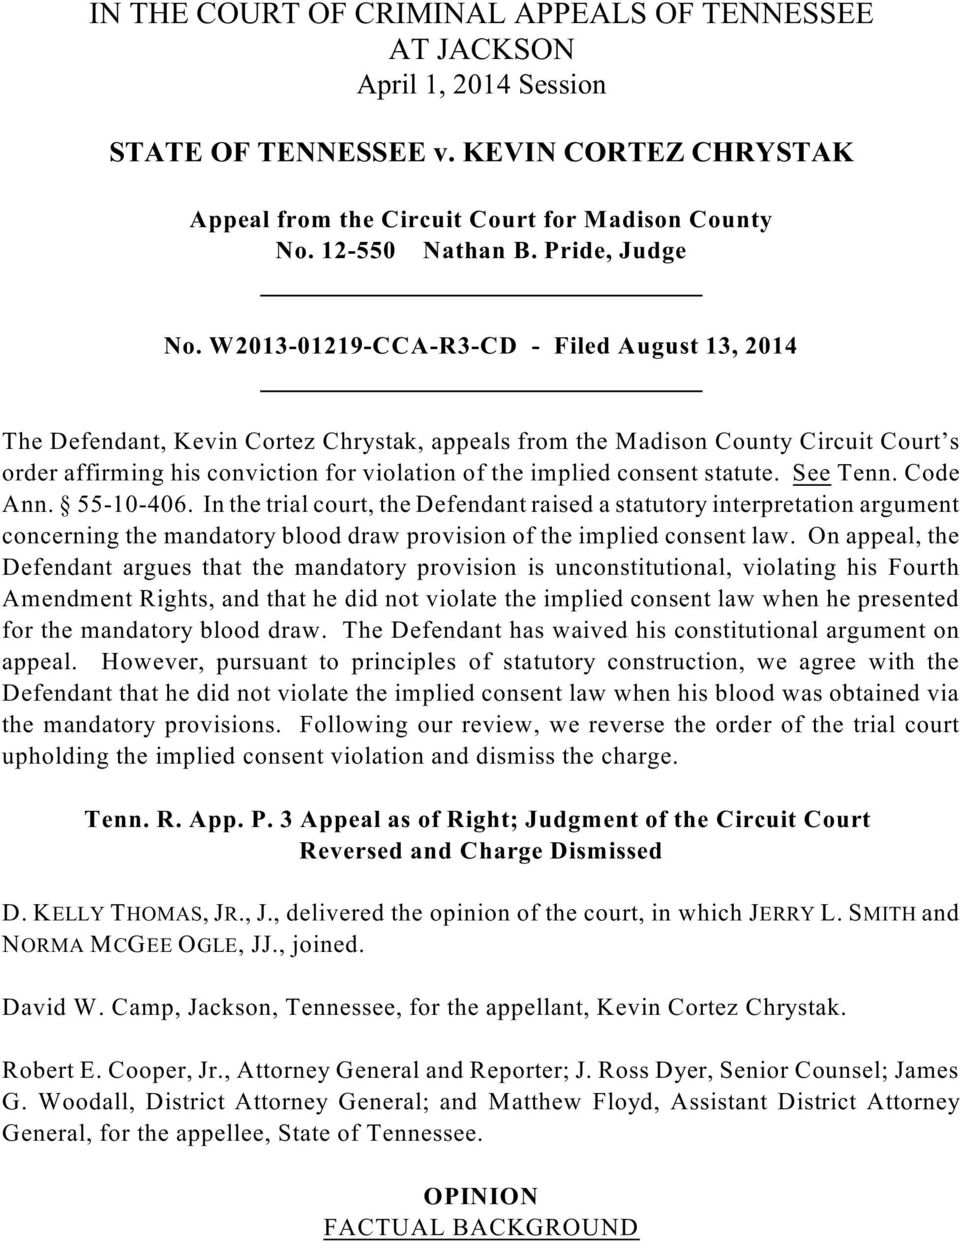 W2013-01219-CCA-R3-CD - Filed August 13, 2014 The Defendant, Kevin Cortez Chrystak, appeals from the Madison County Circuit Court s order affirming his conviction for violation of the implied consent